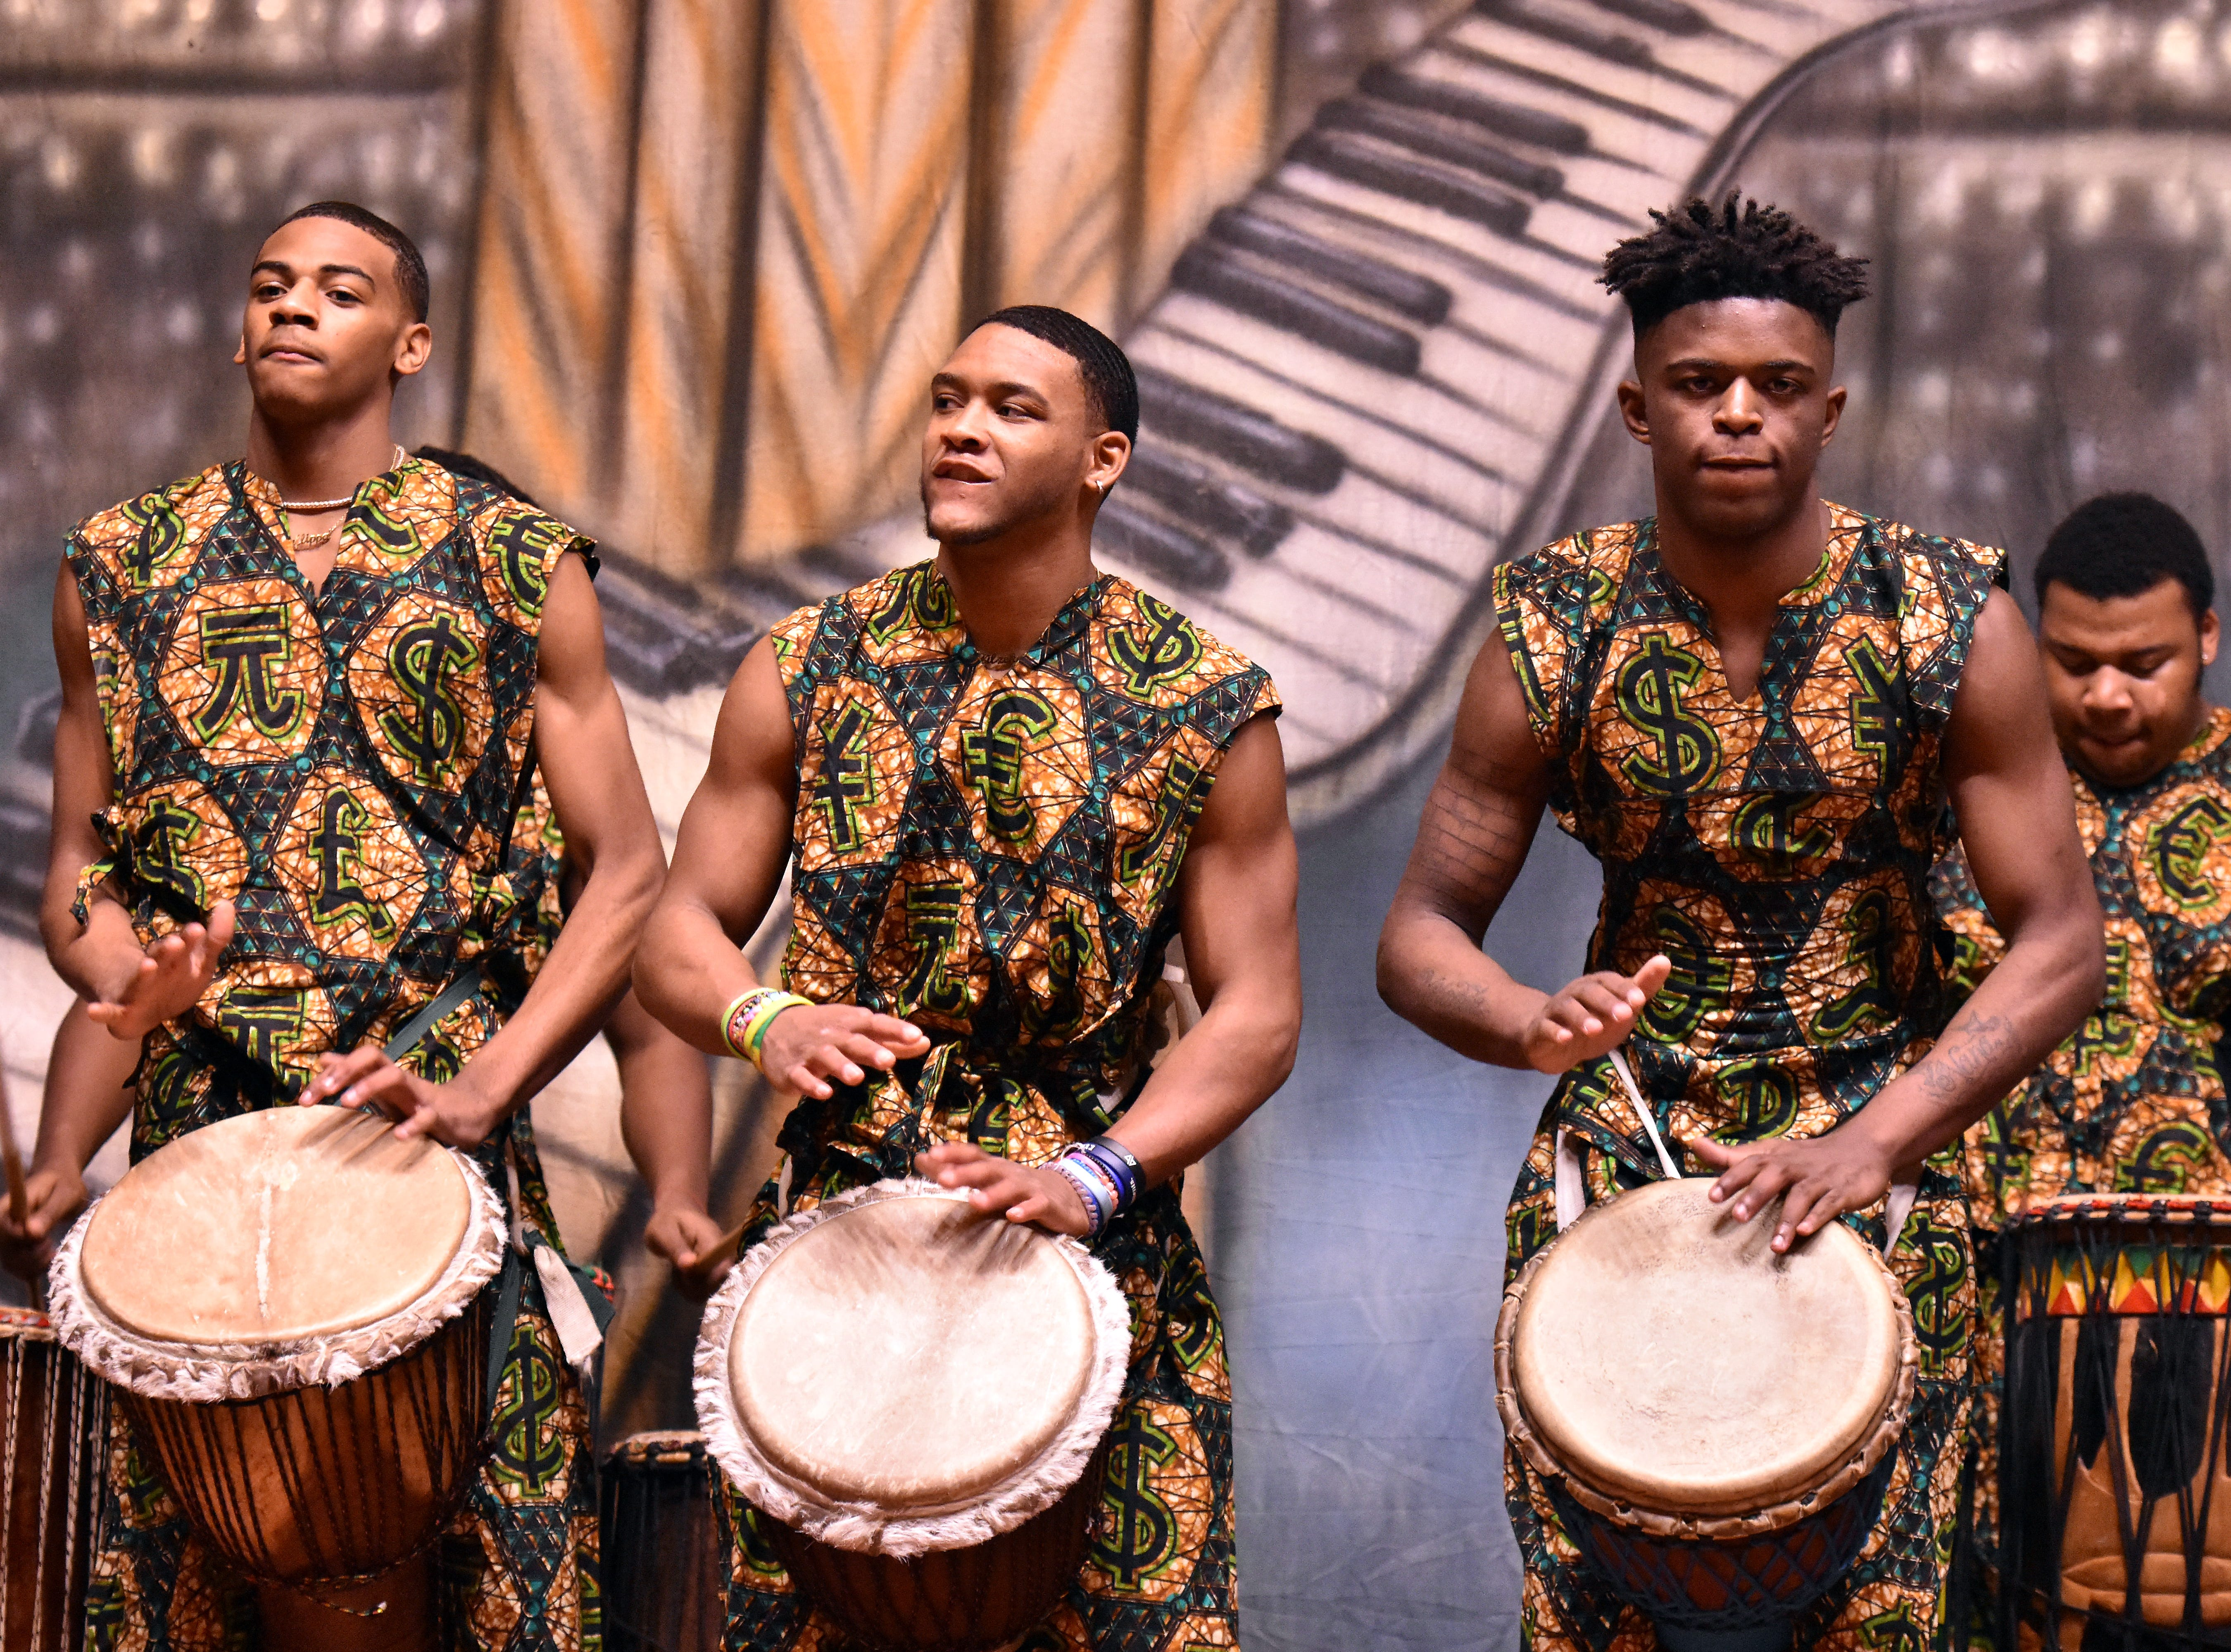 The West African drummers from Austin-East Magnet perform for the students at Holston MIddle School.